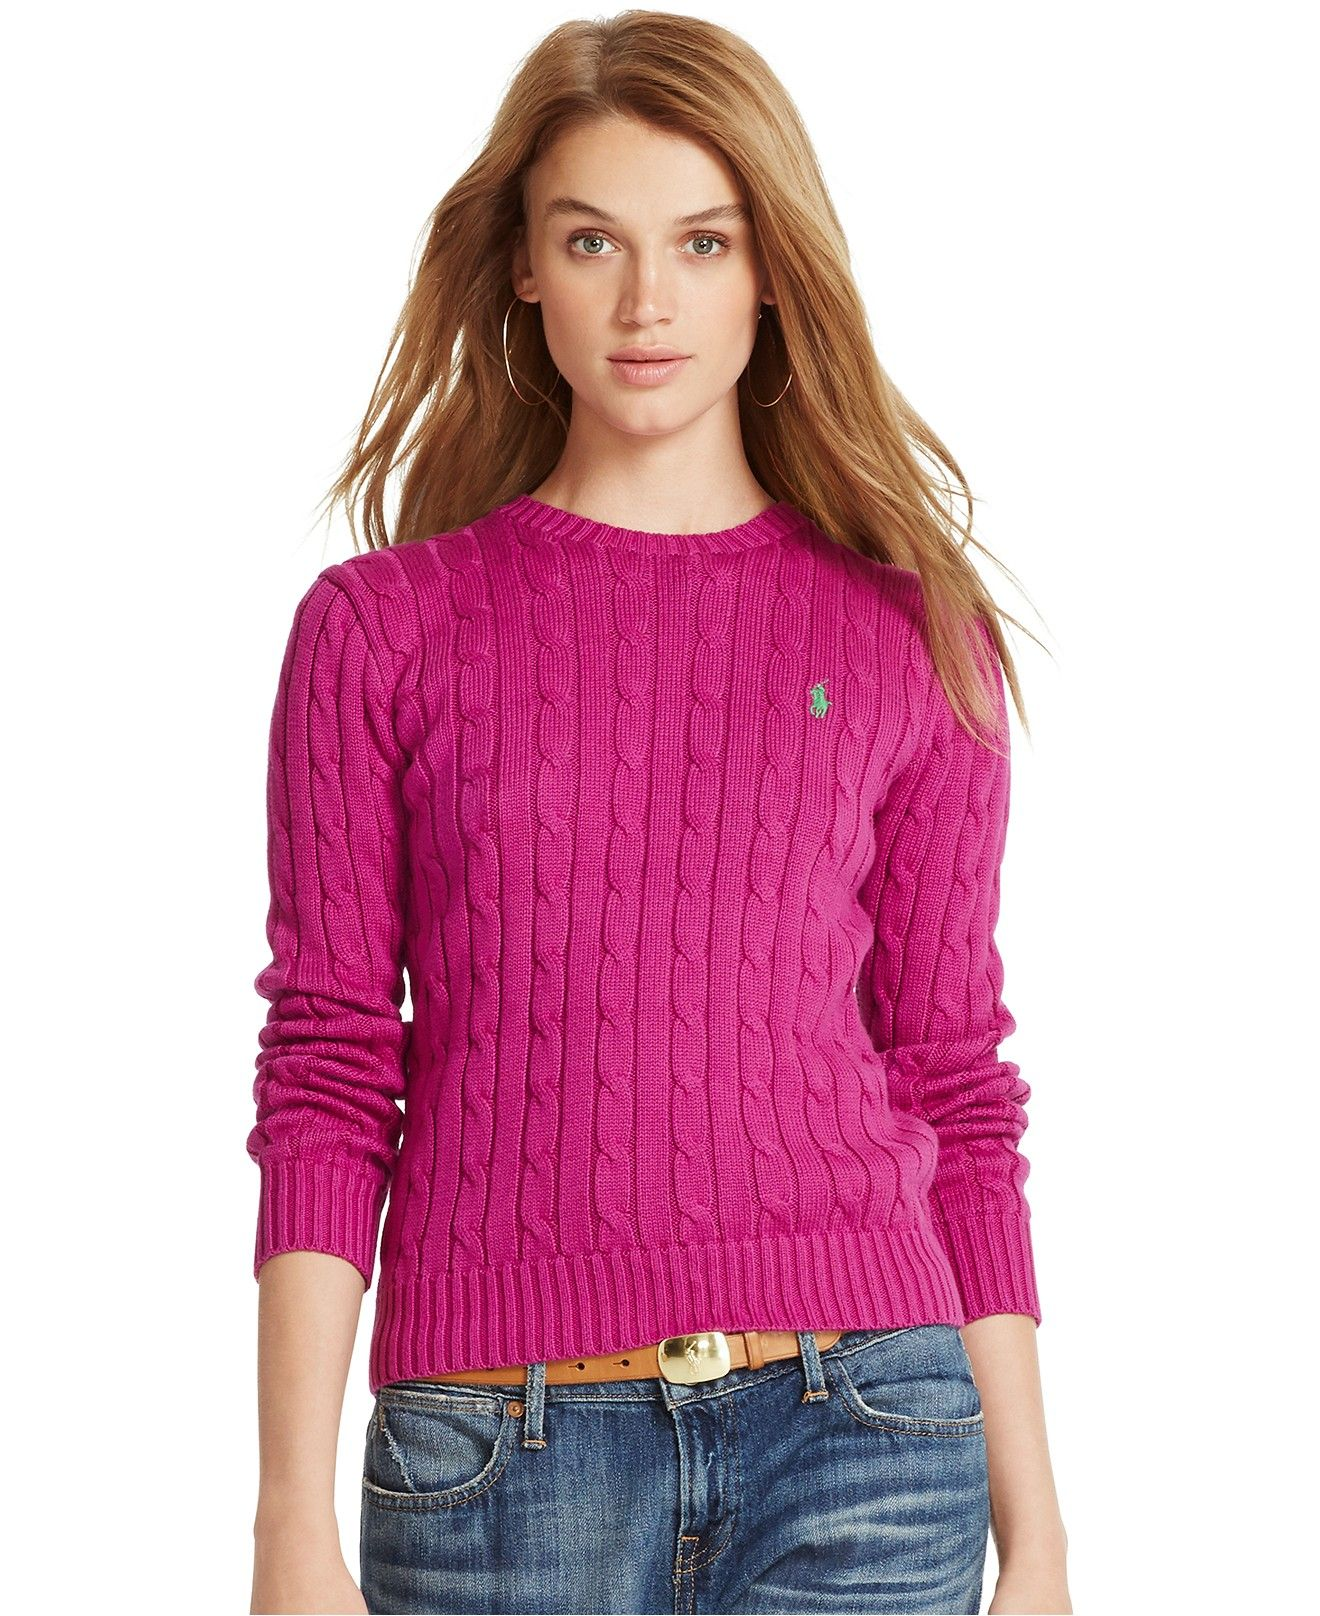 3234970aa Polo Ralph Lauren Cable-Knit Crew-Neck Sweater - Polo Ralph Lauren ...